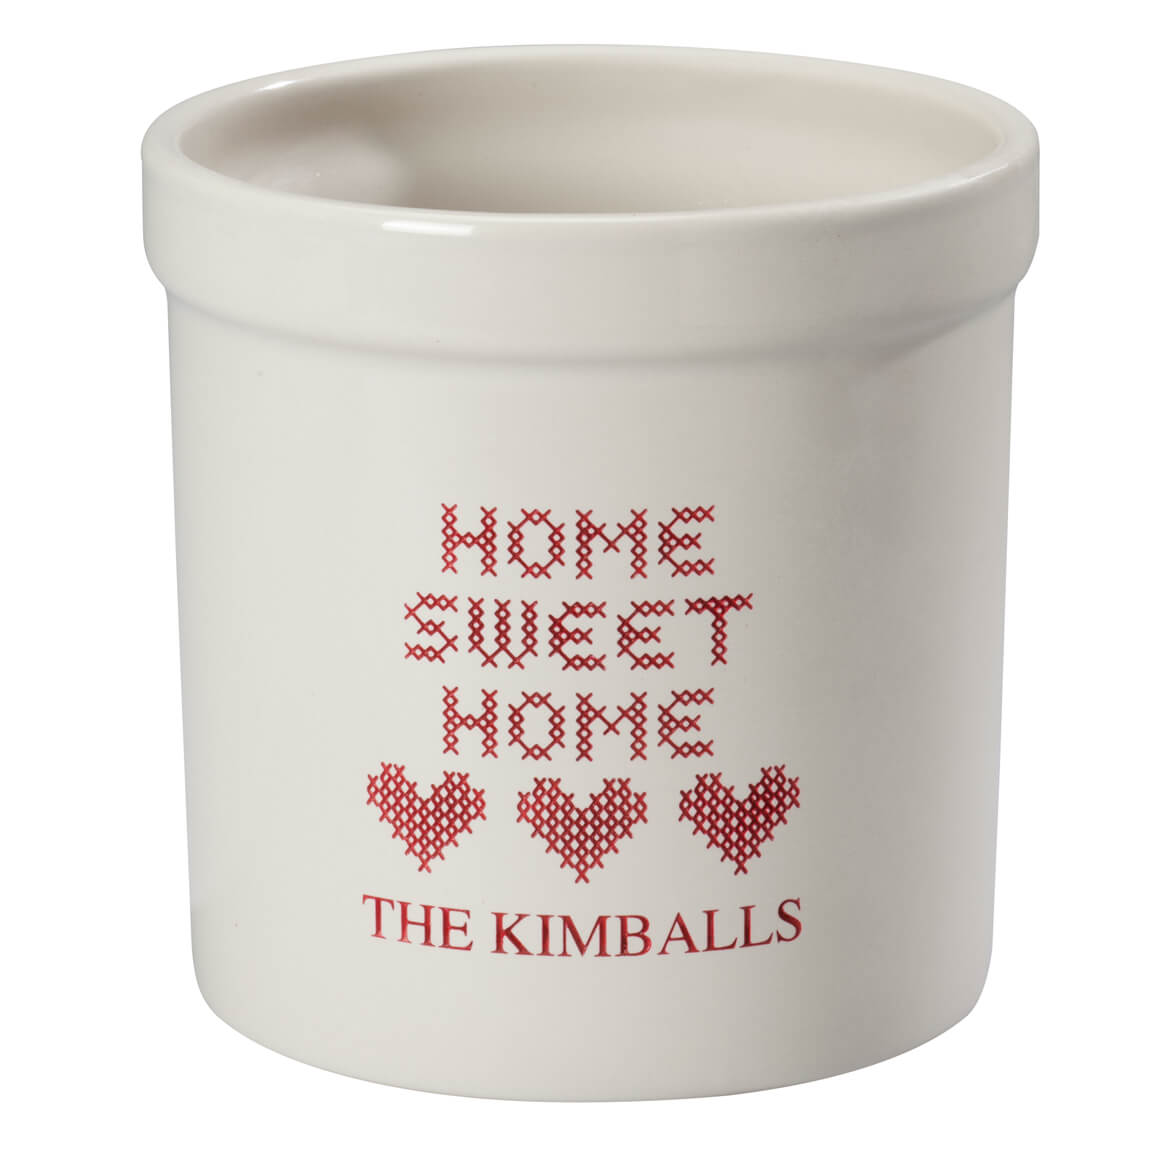 Personalized Home Sweet Home Etched Crock 2 Quart